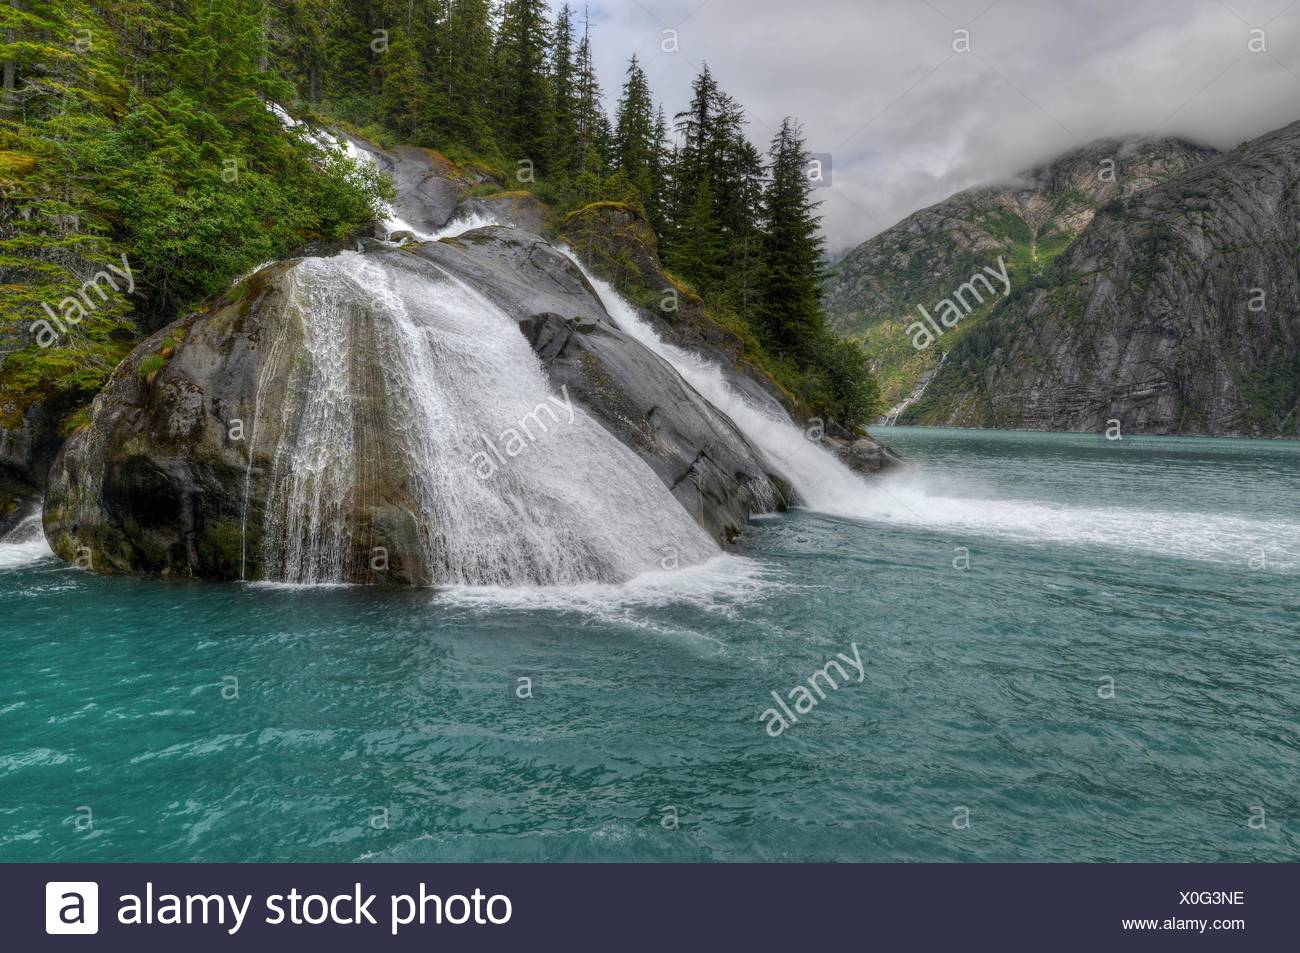 USA, Alaska, Juneau, Tongass National Forest, Ice Falls in Tracy Arm Fjord - Stock Image